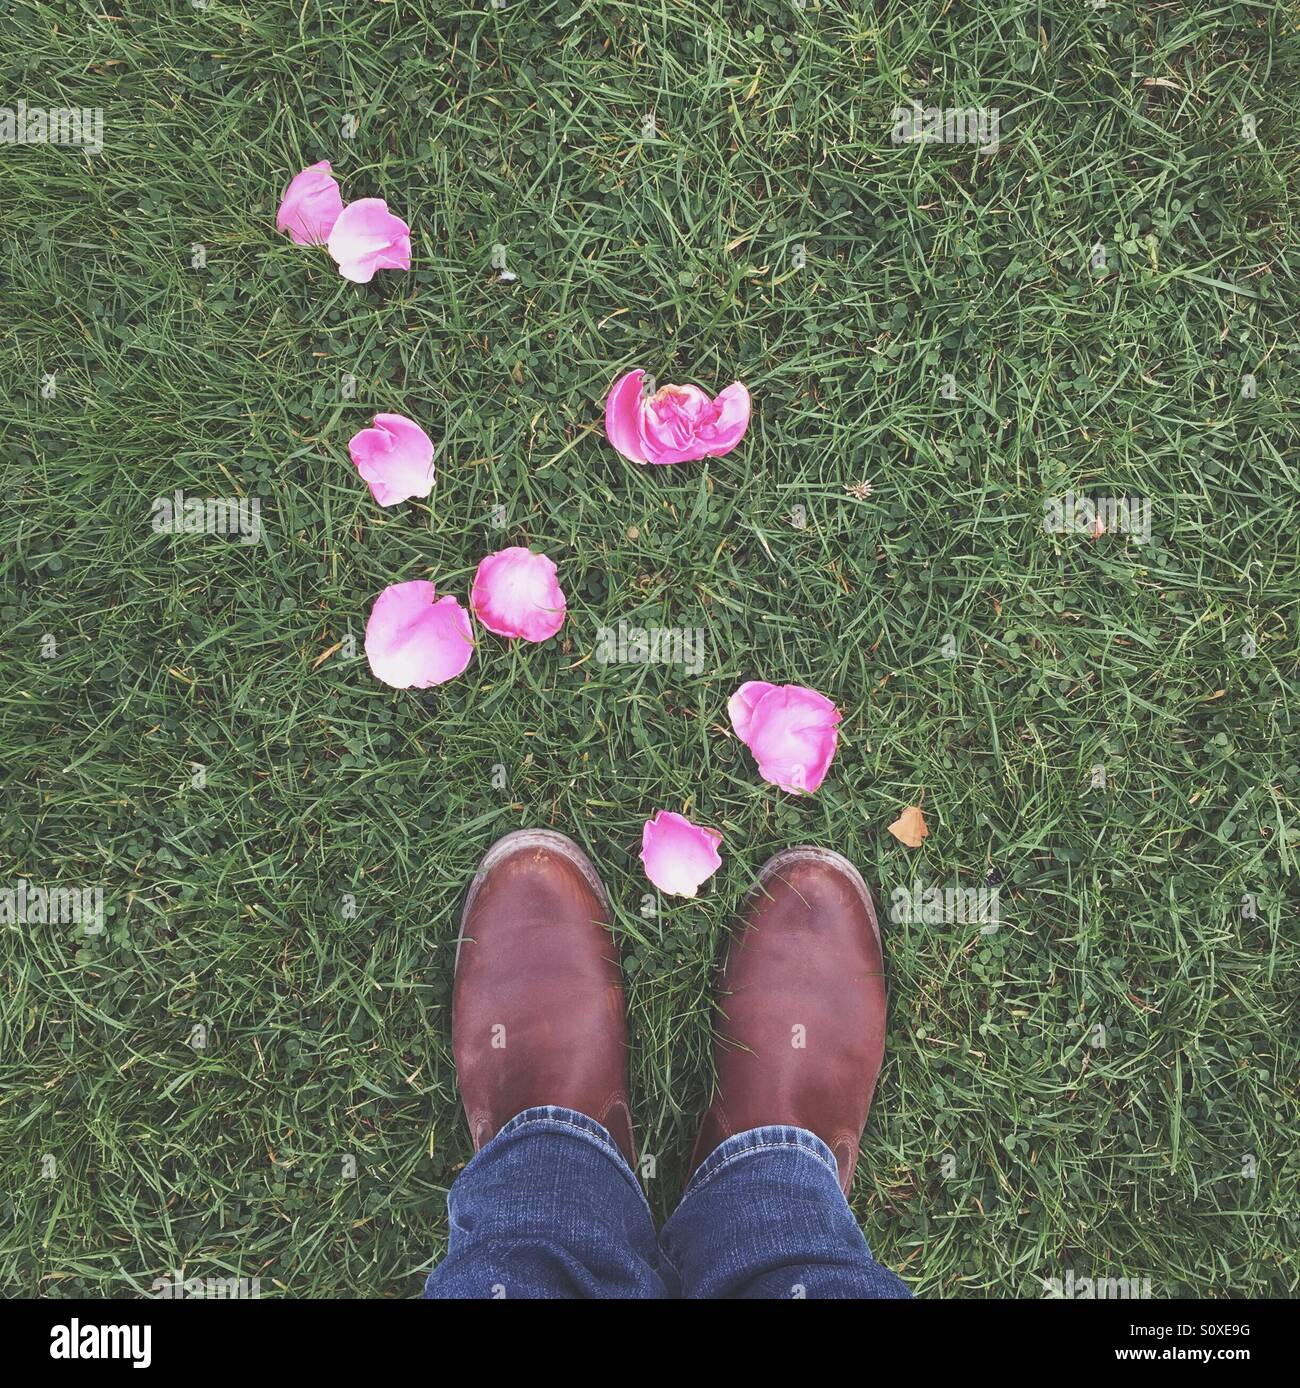 Lady with rose petals - Stock Image